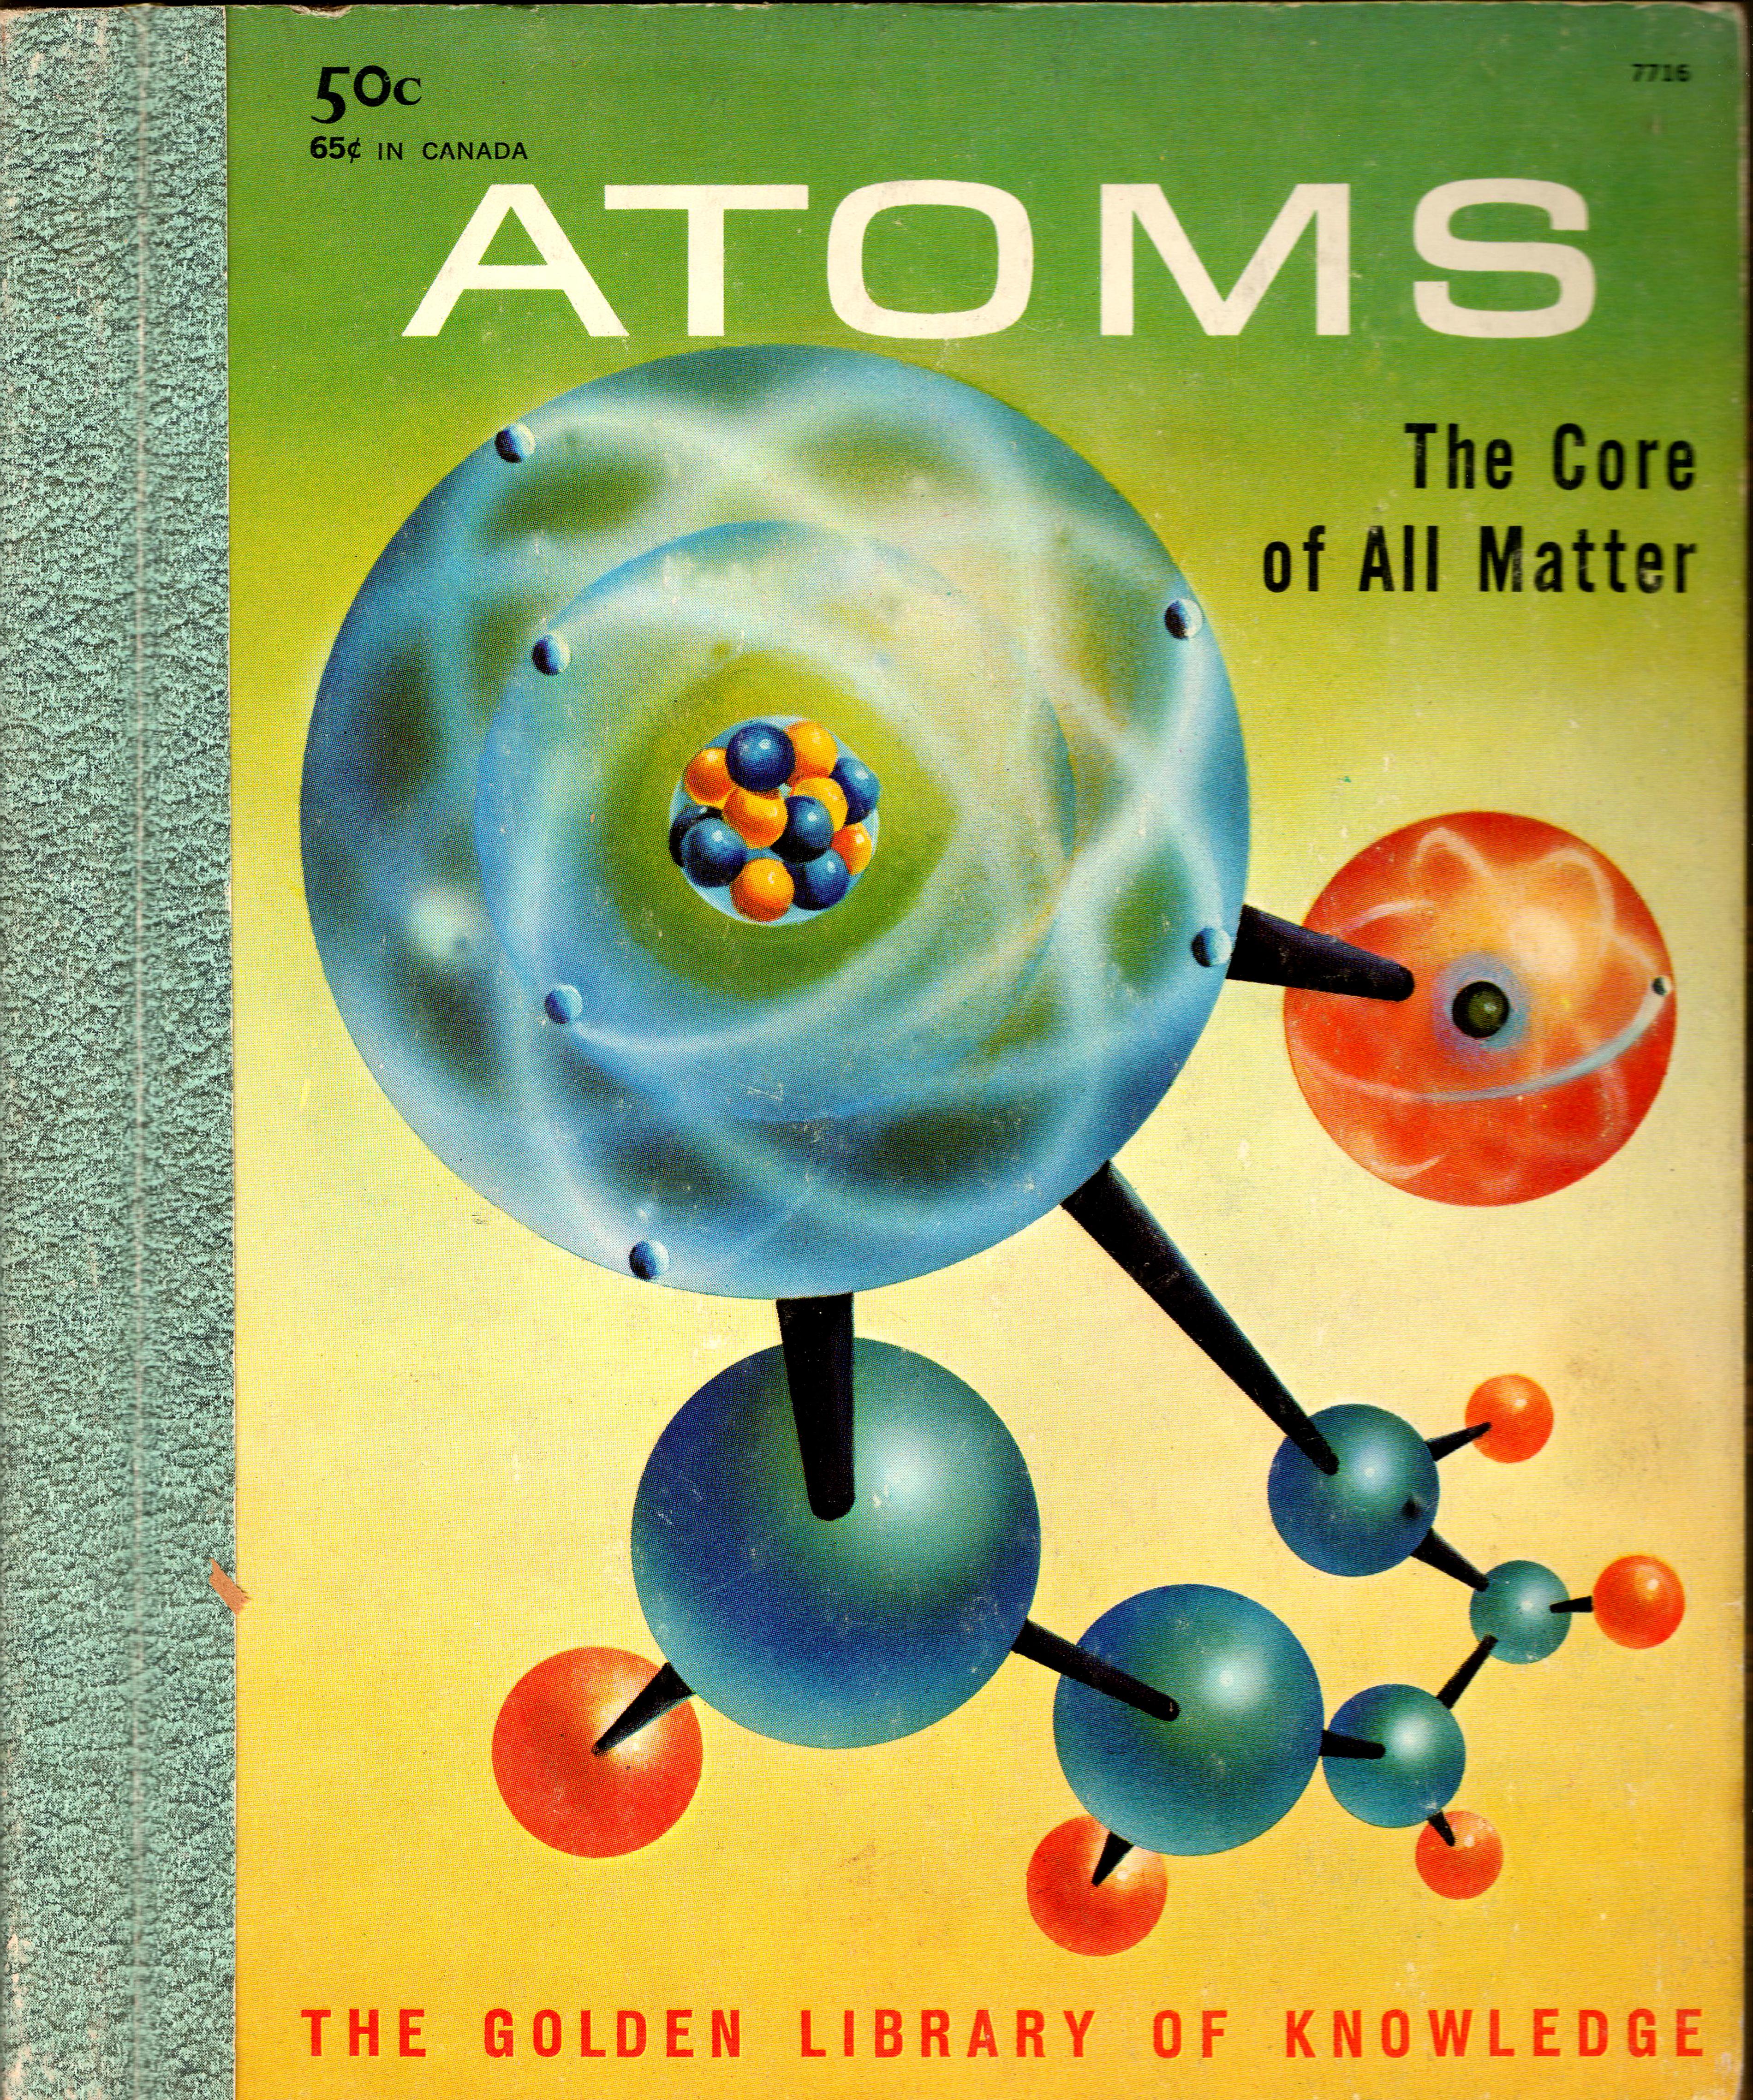 'Atoms: The Core of All Matter' - 1959